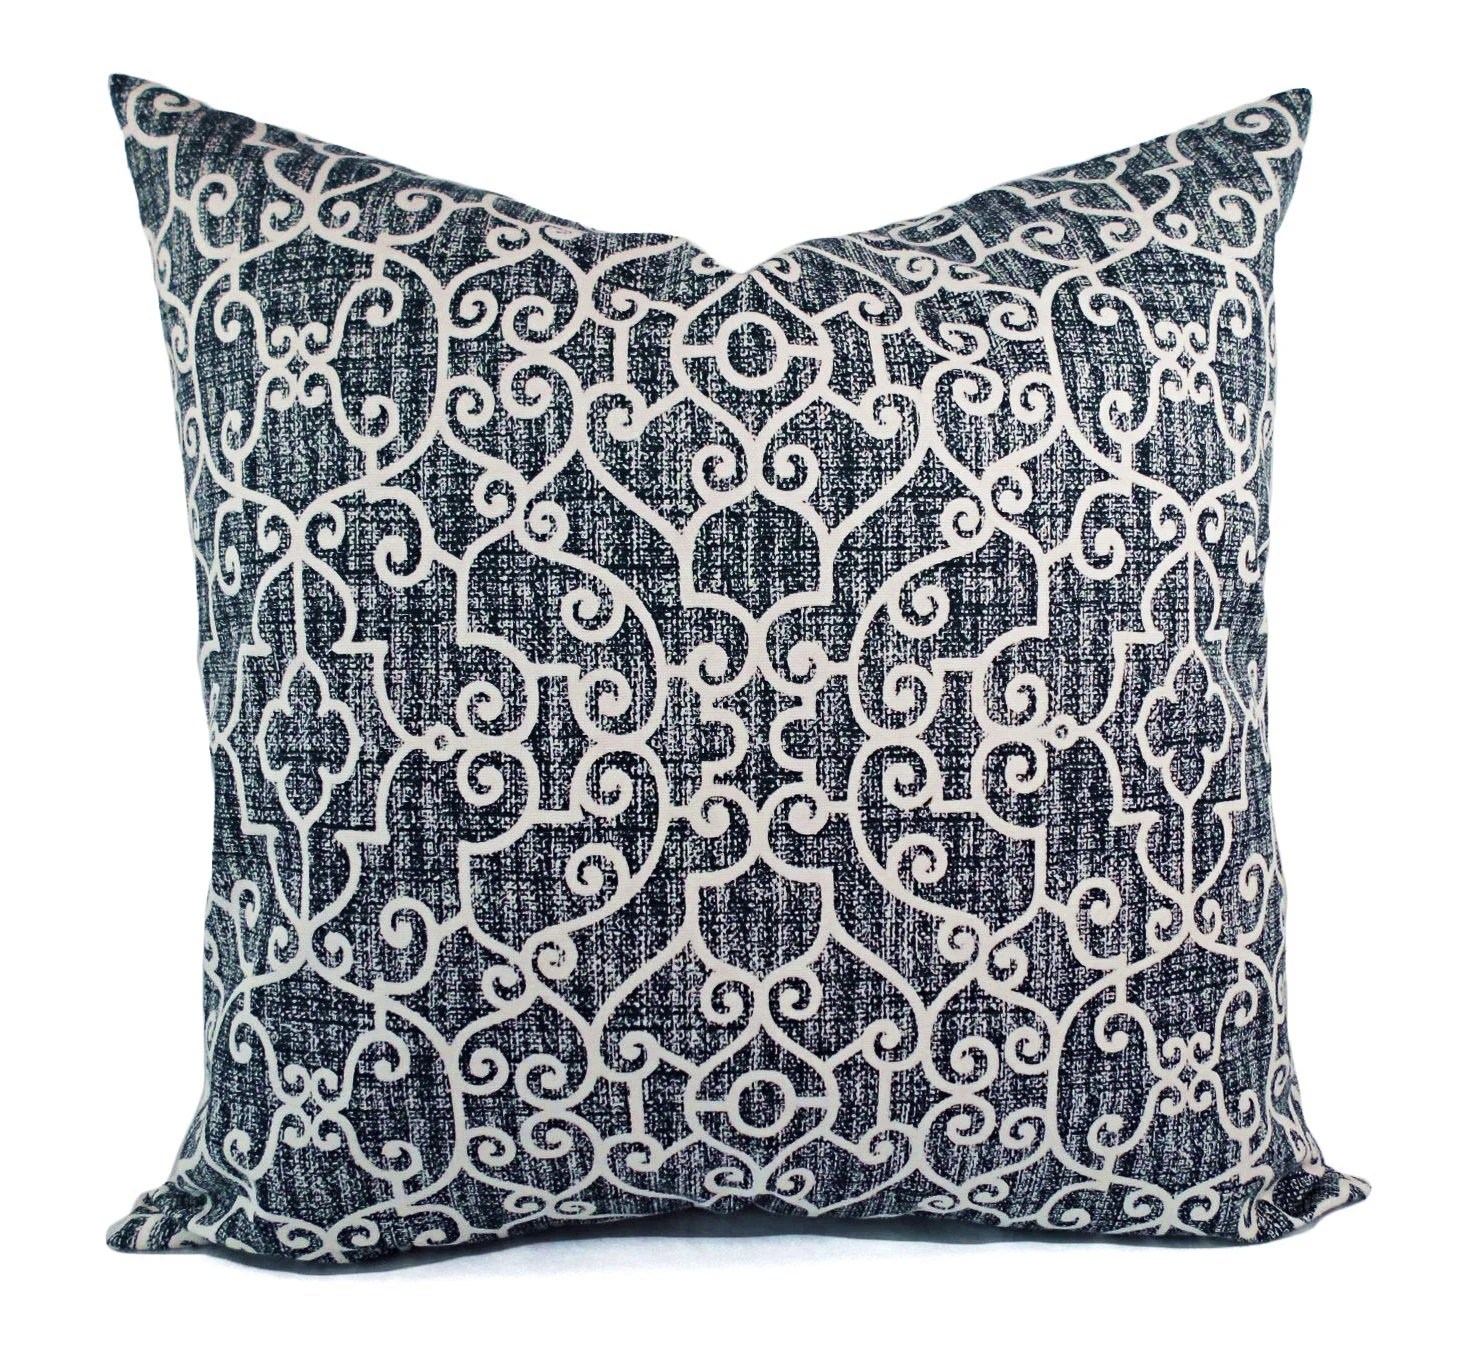 Two OUTDOOR Pillows Navy White Pillow Cover Navy Blue